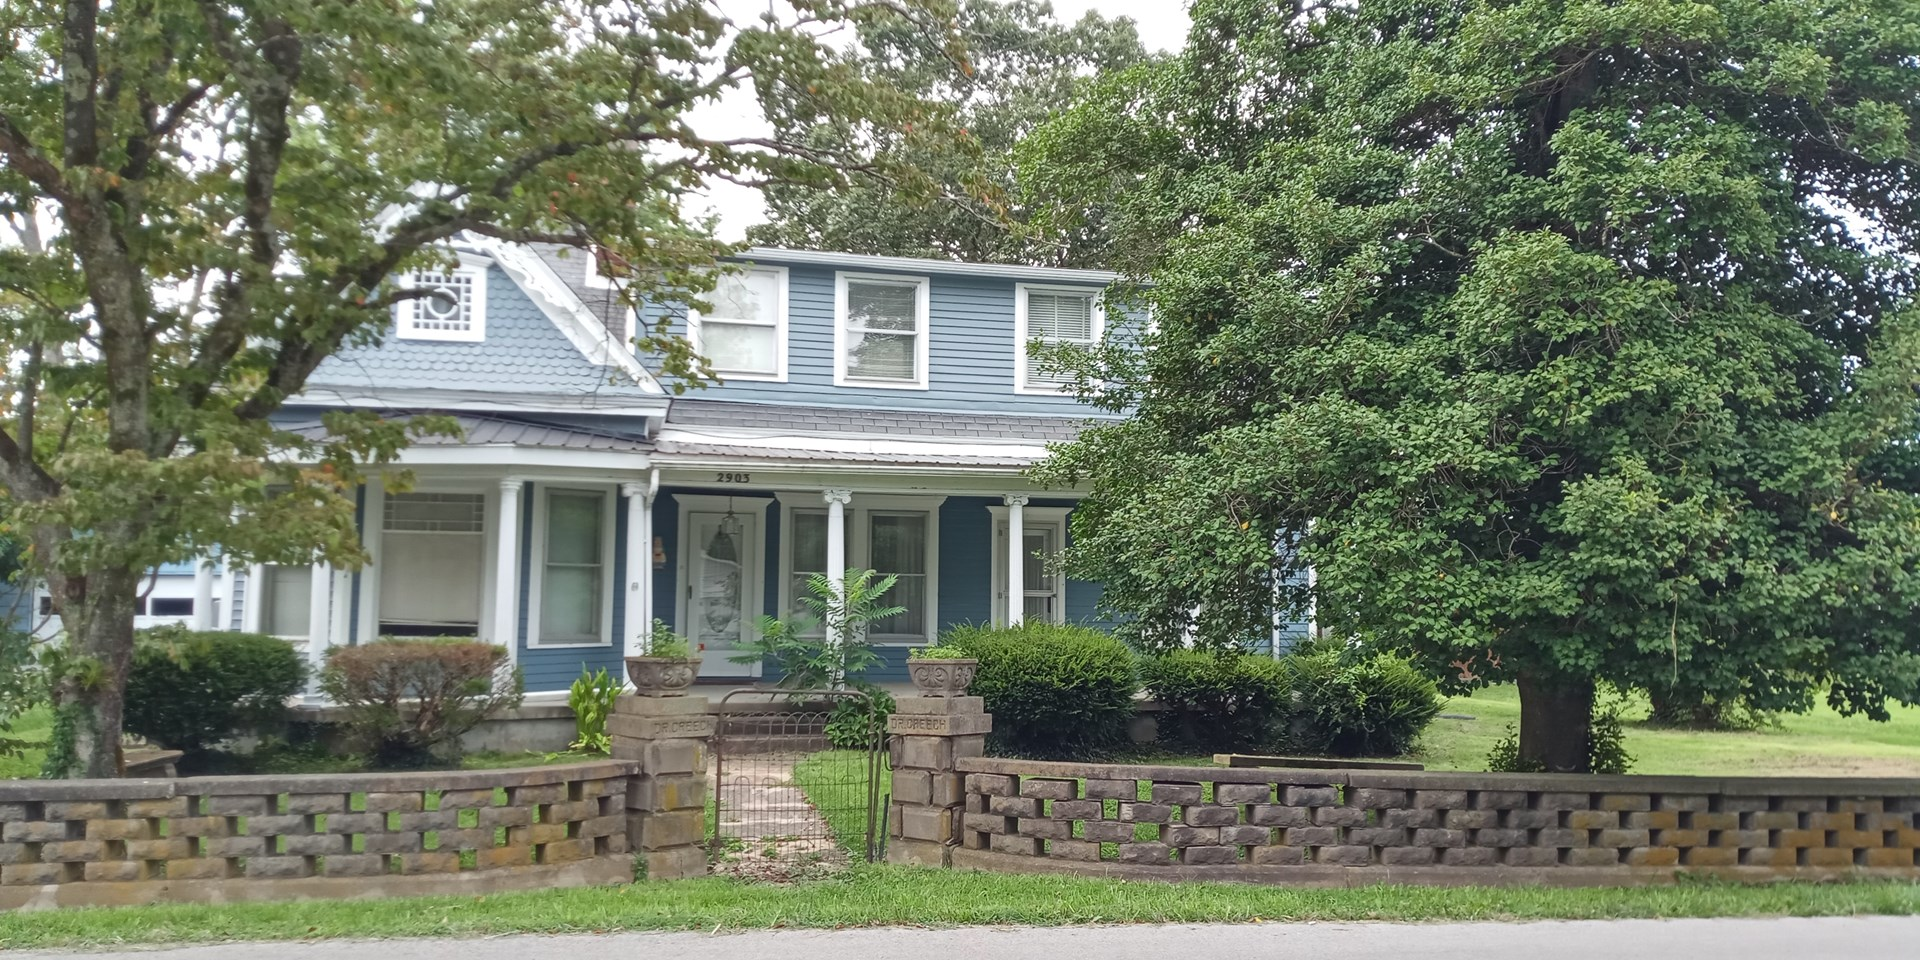 Historic Country Home located in Middleburg, Kentucky